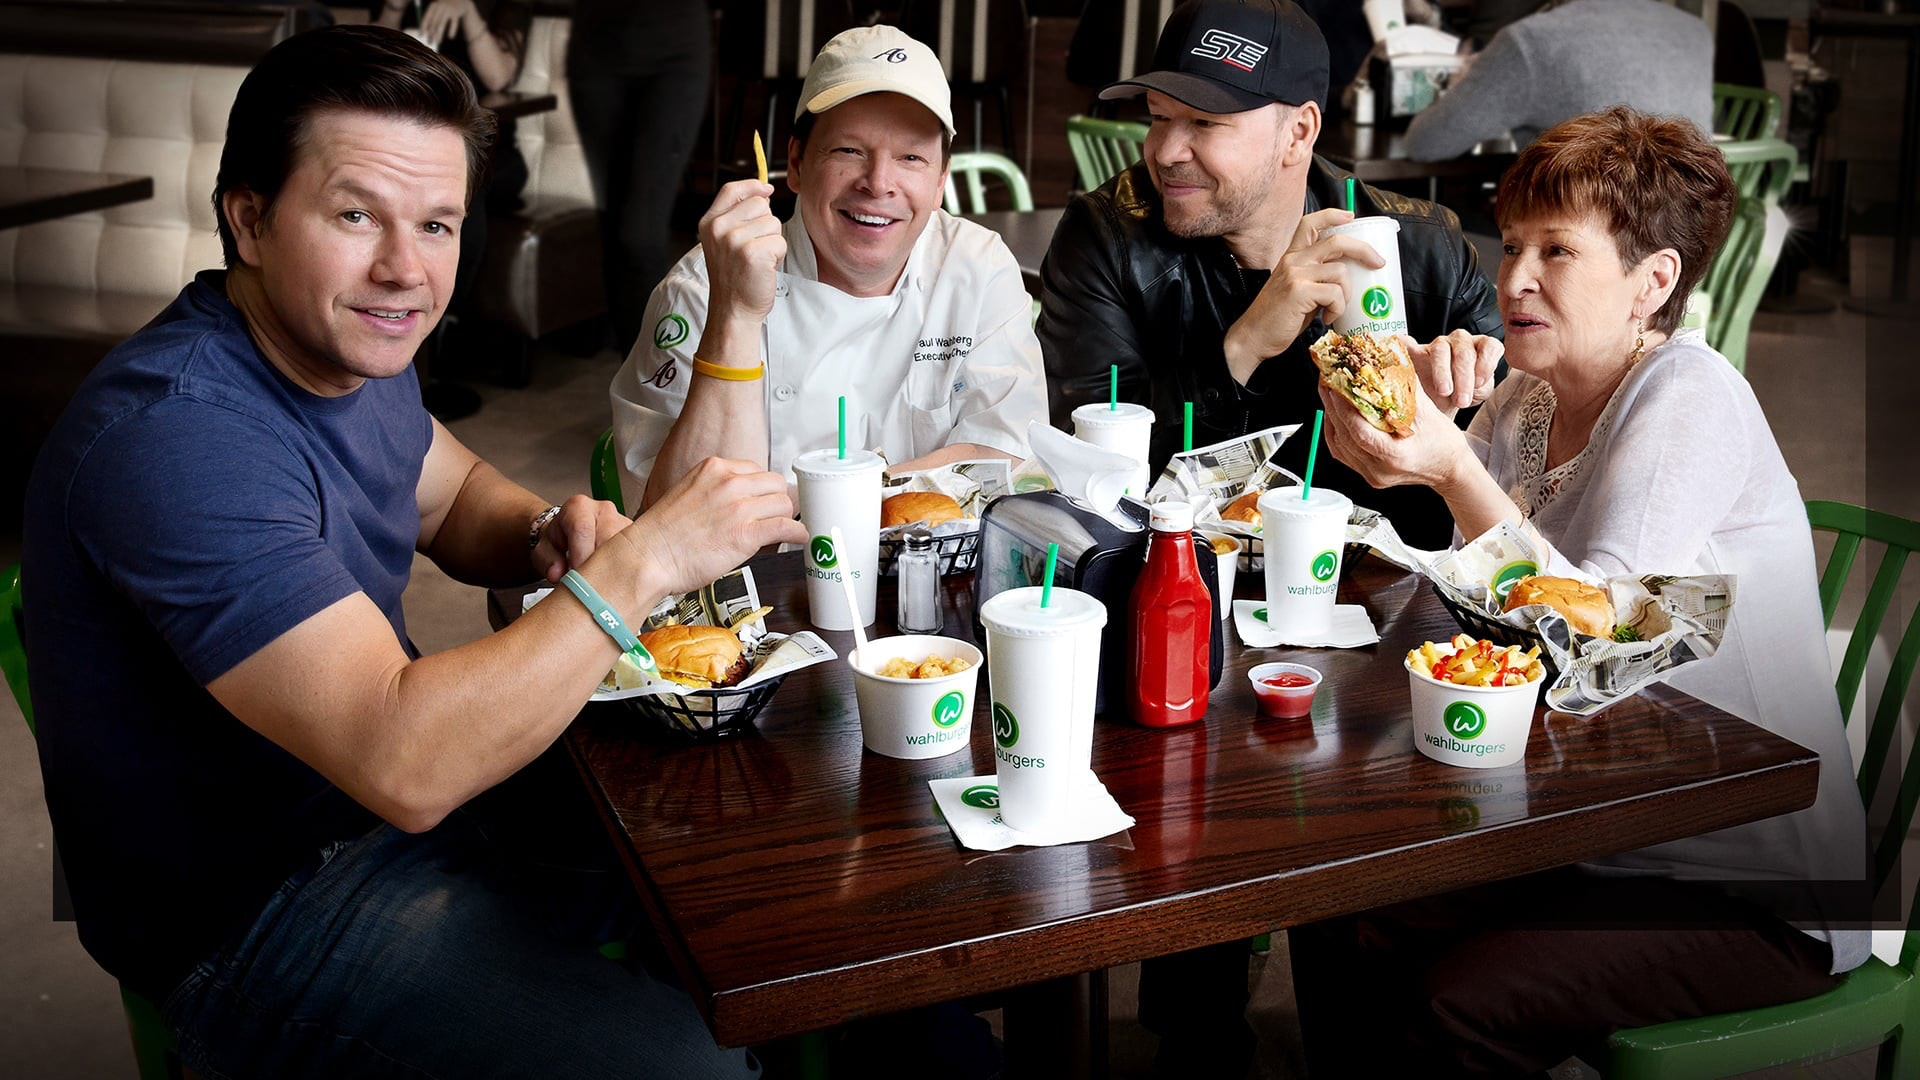 Wahlburgers Soundtrack